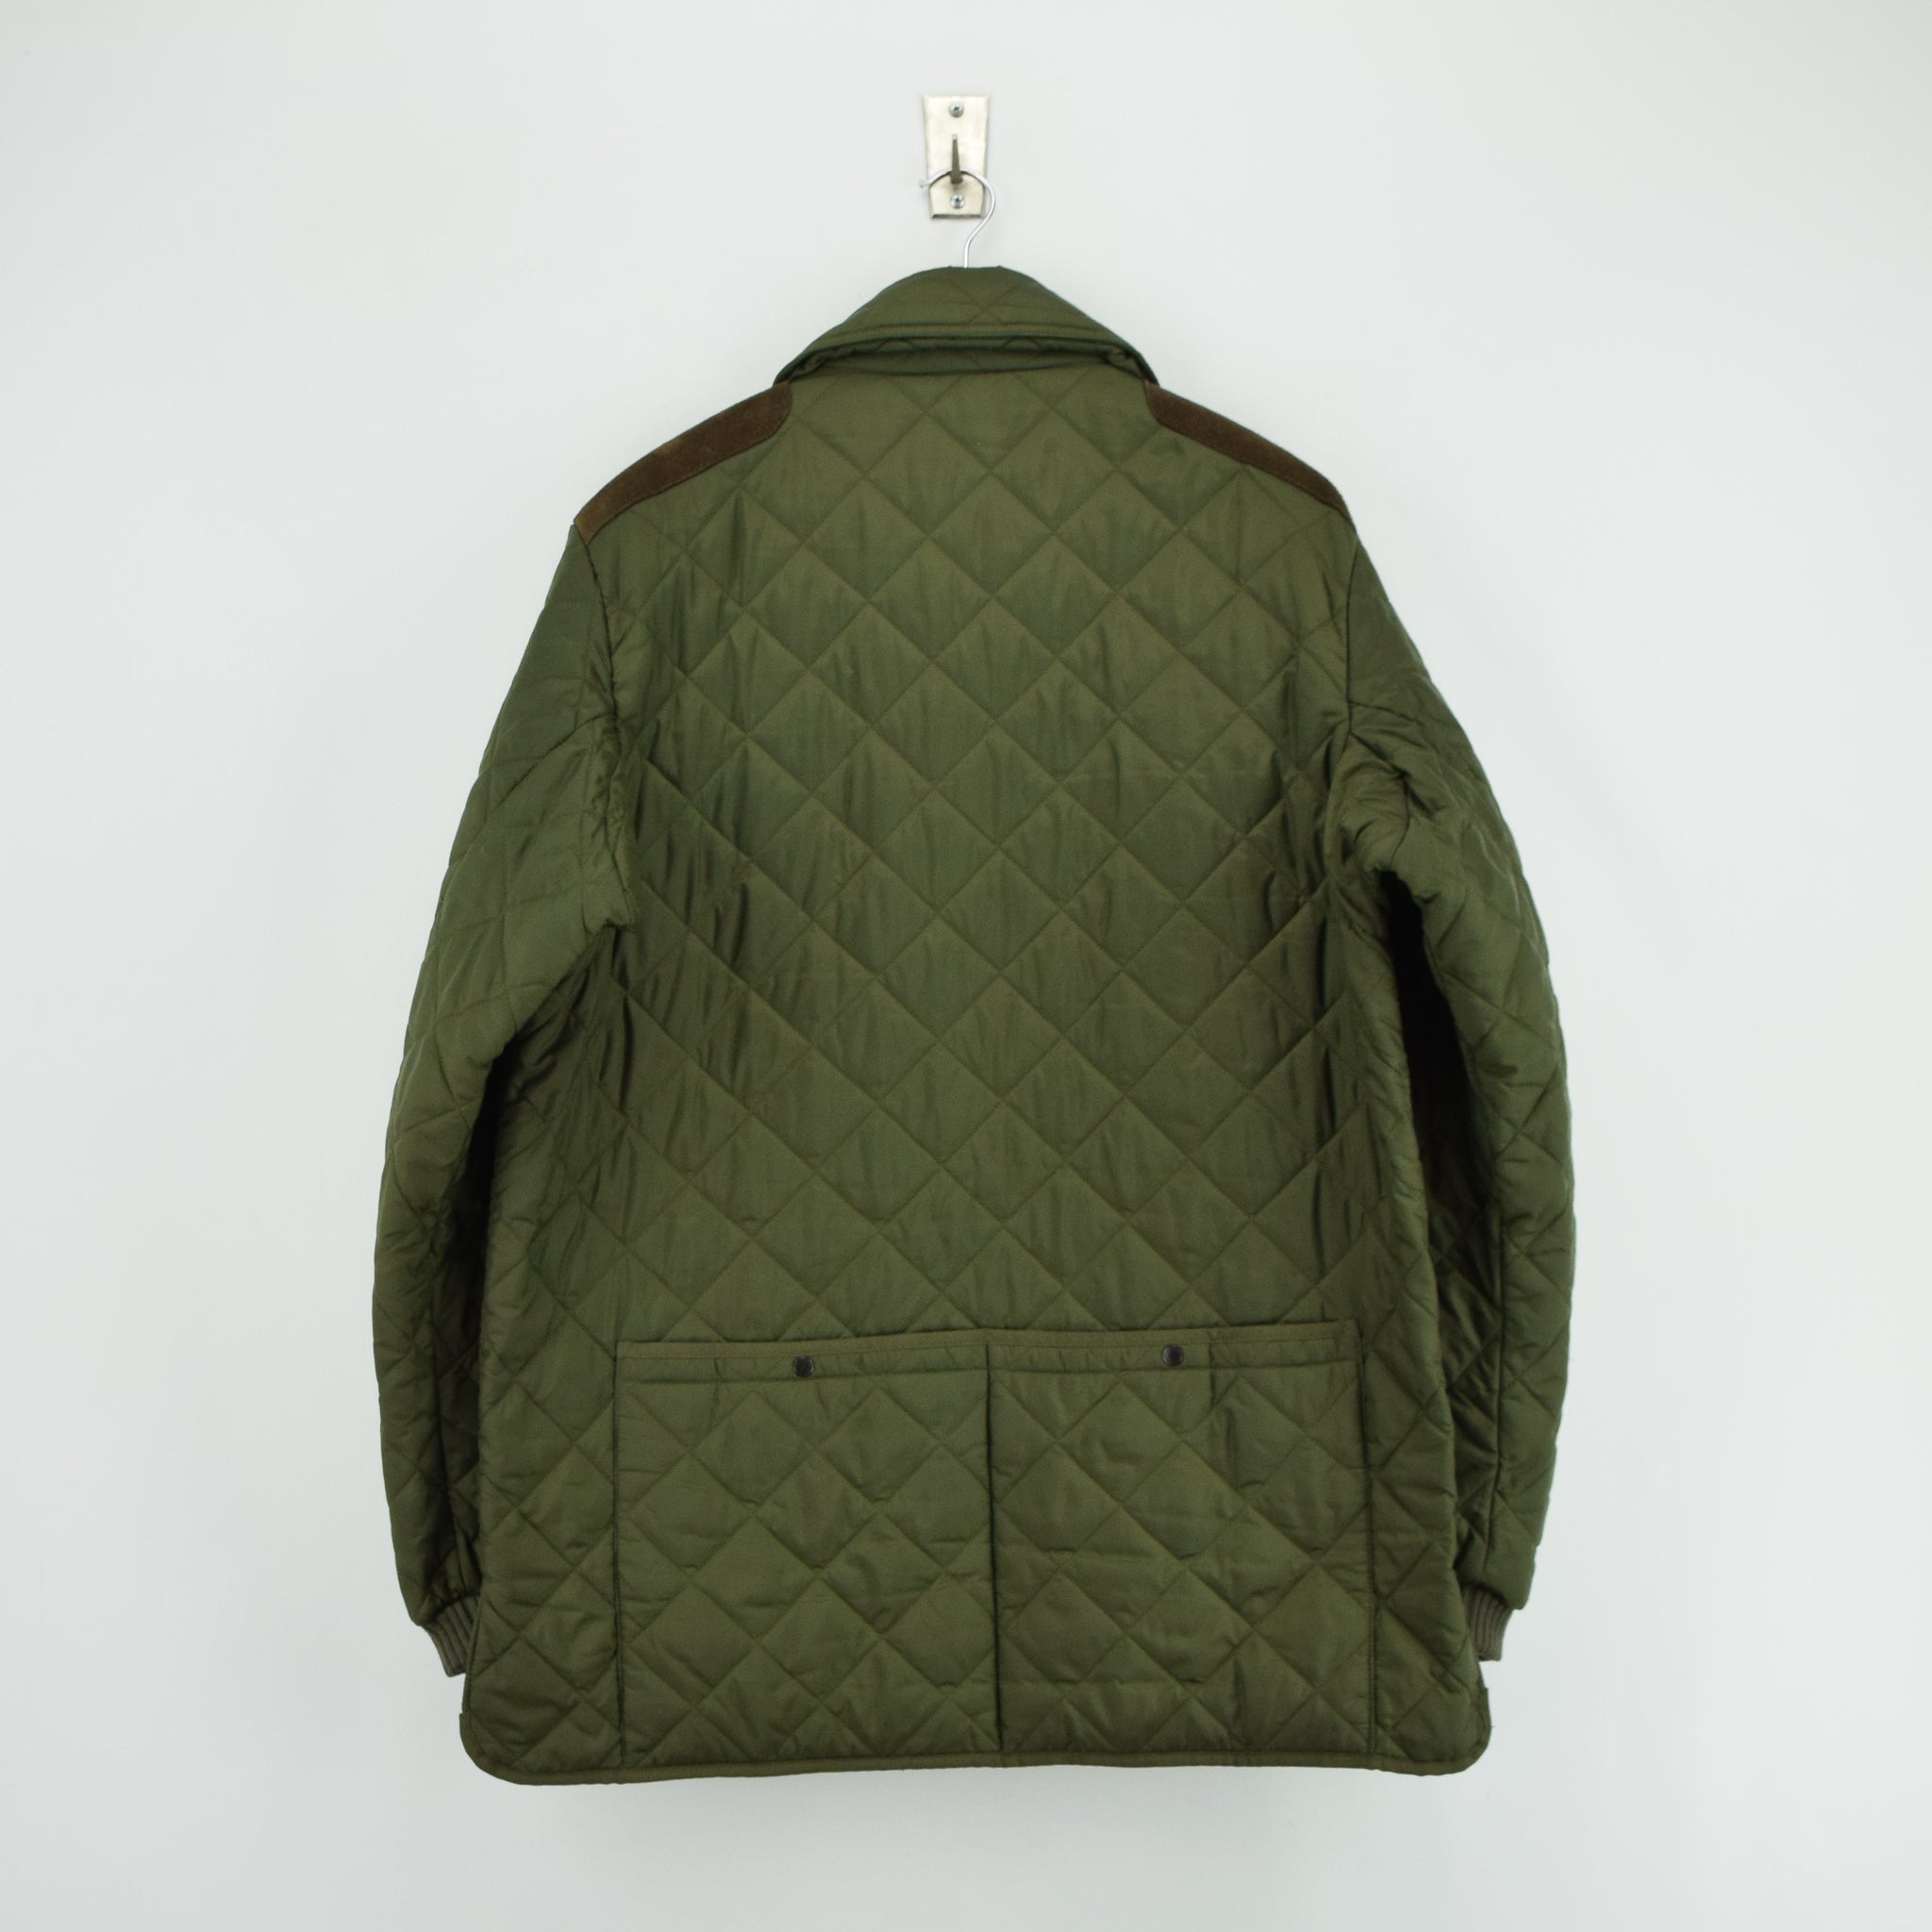 Barbour New Keeperwear Hunting Green Quilted Shooting Jacket Suede Patches M back